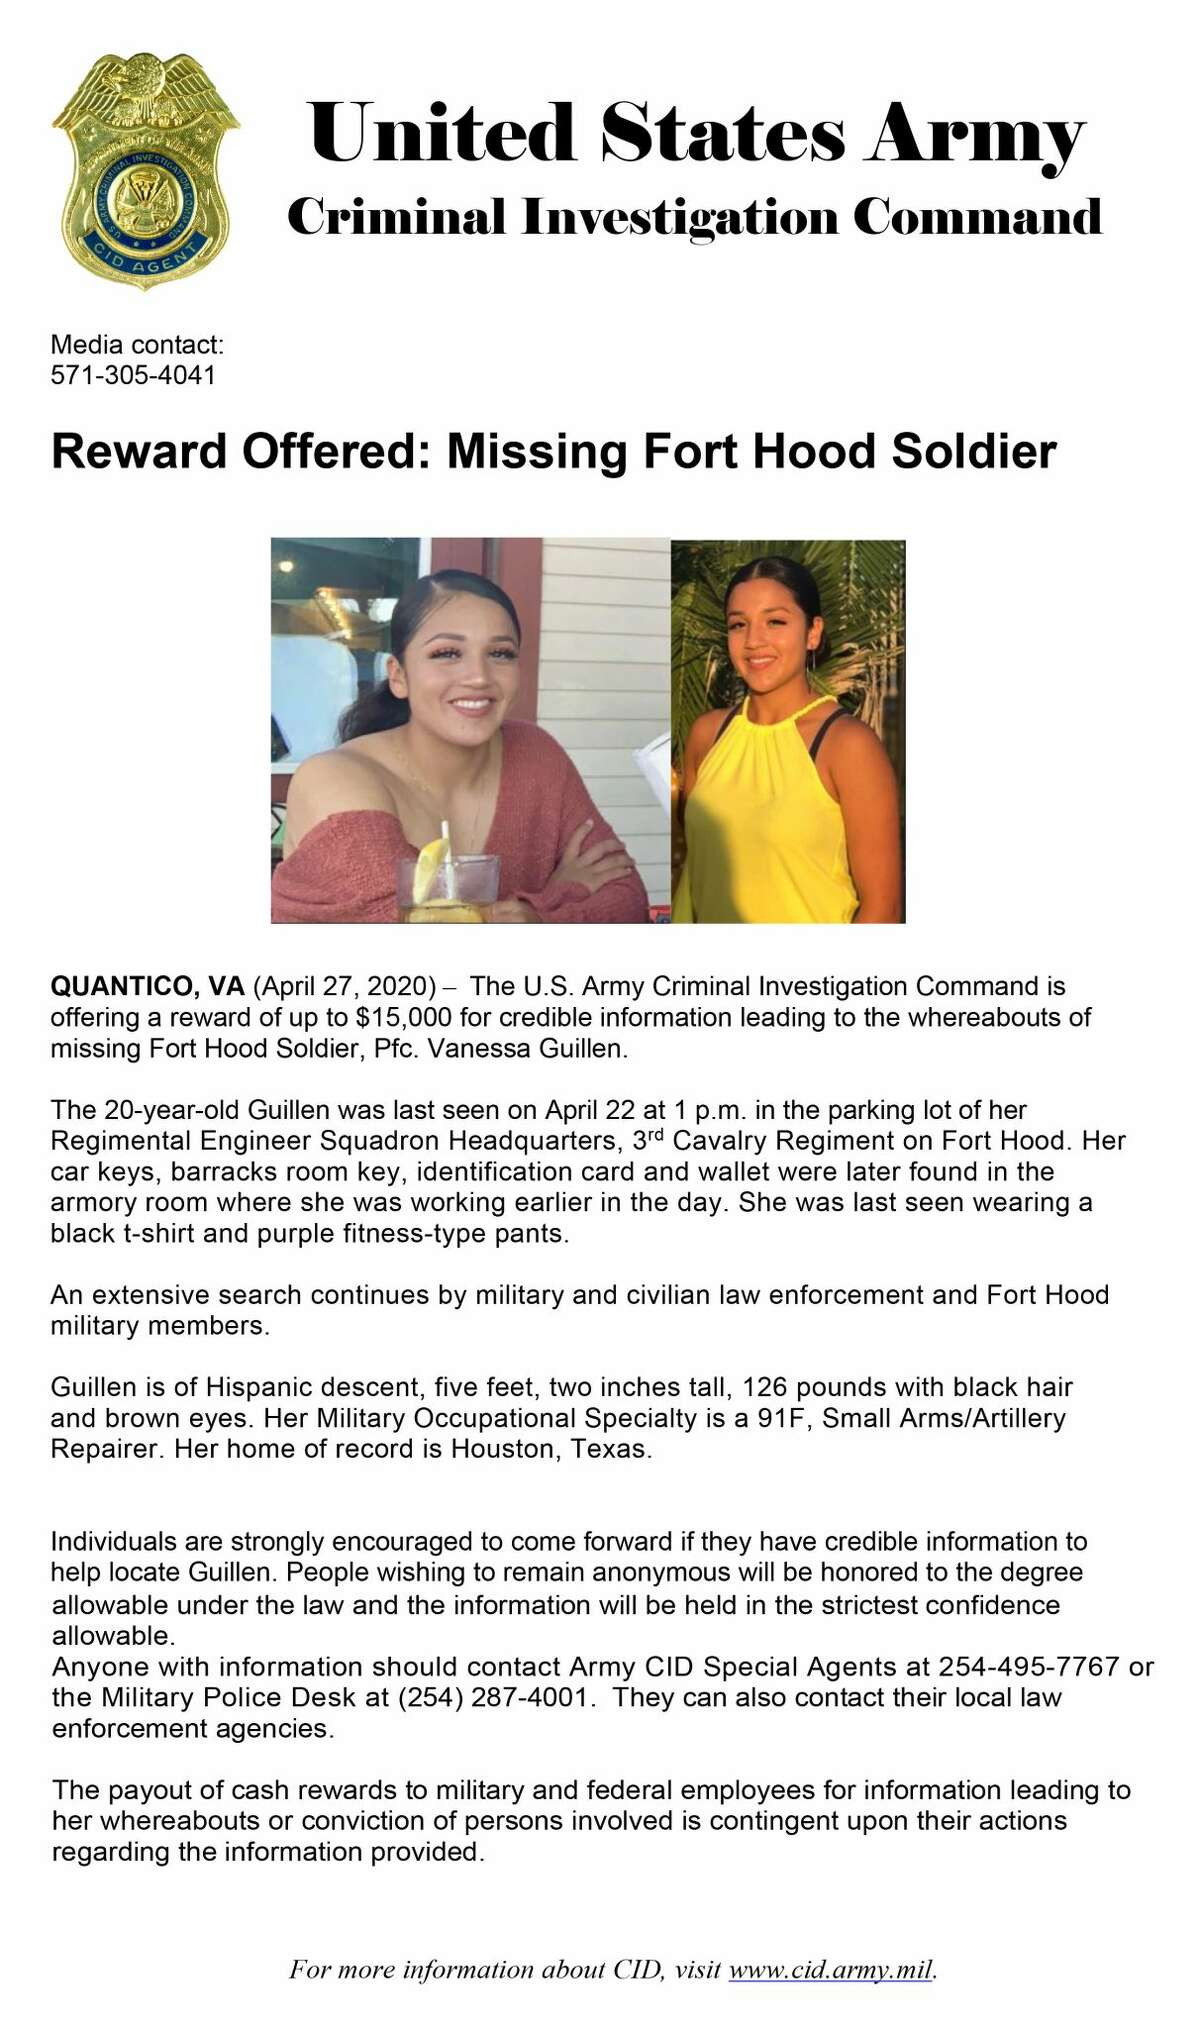 Fort Hood officials and Special Agents from the U.S. Army Criminal Investigation Command are asking for the public's assistance in locating 20-year old Pfc. Vanessa Guillen.